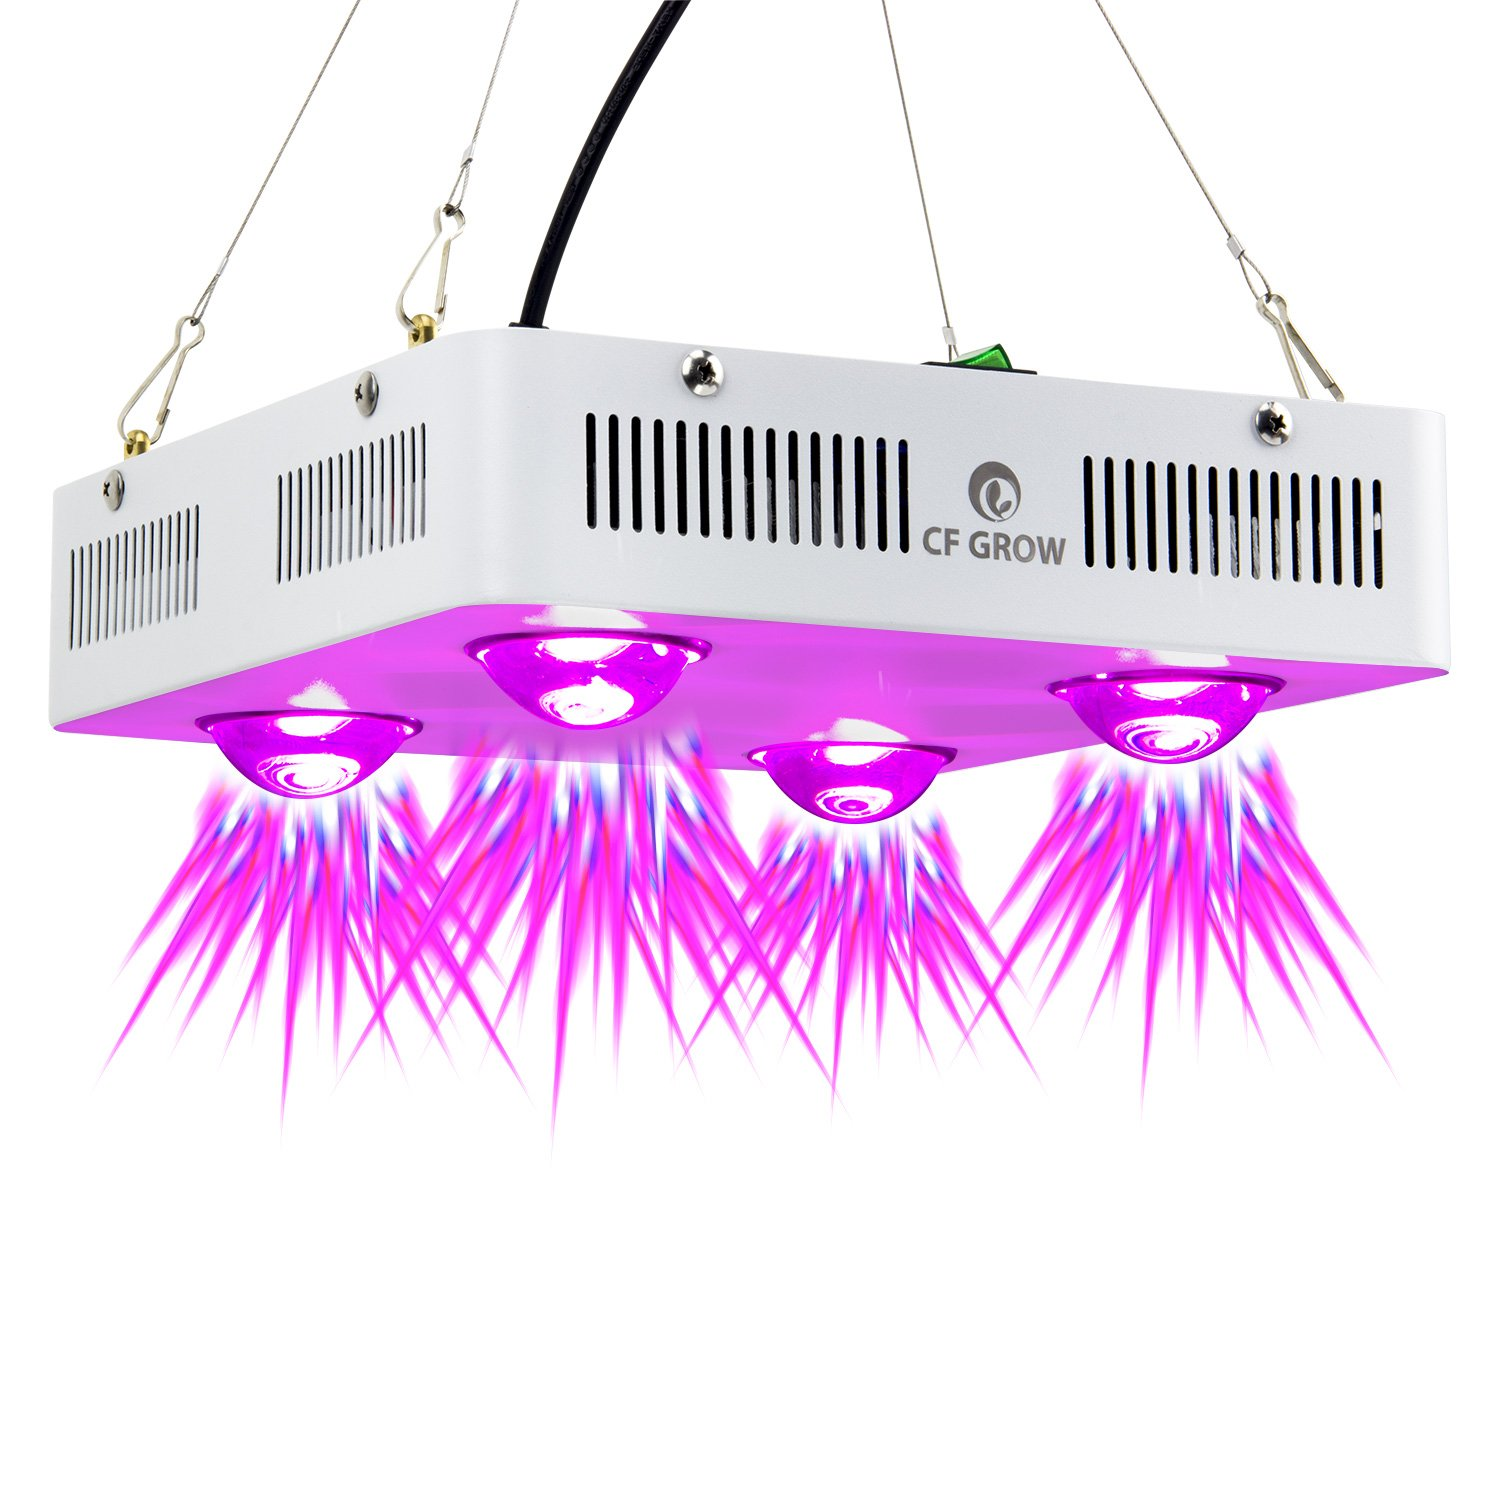 Led Grow Light Plant Lamp Full Spectrum 300w LED Fixture for Indoor Hydroponic Greenhouse Leafy Vegetable Flower Growth Warm White[Energy Class A+] - White CF Grow